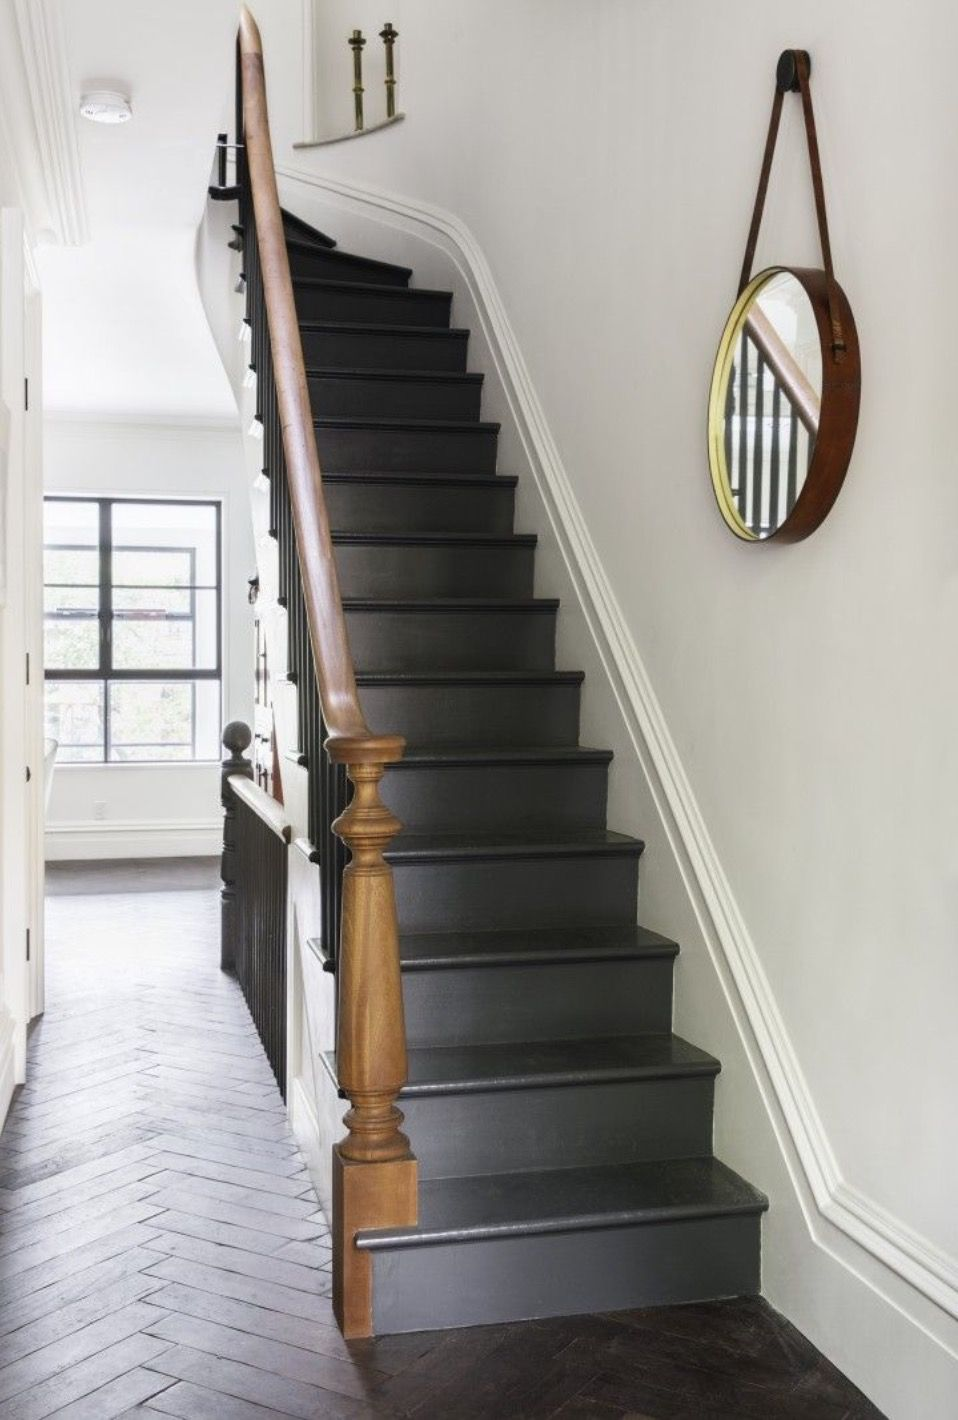 Merveilleux Dark Grey Stairs Against The Wooden Floors And Bannister And White Walls